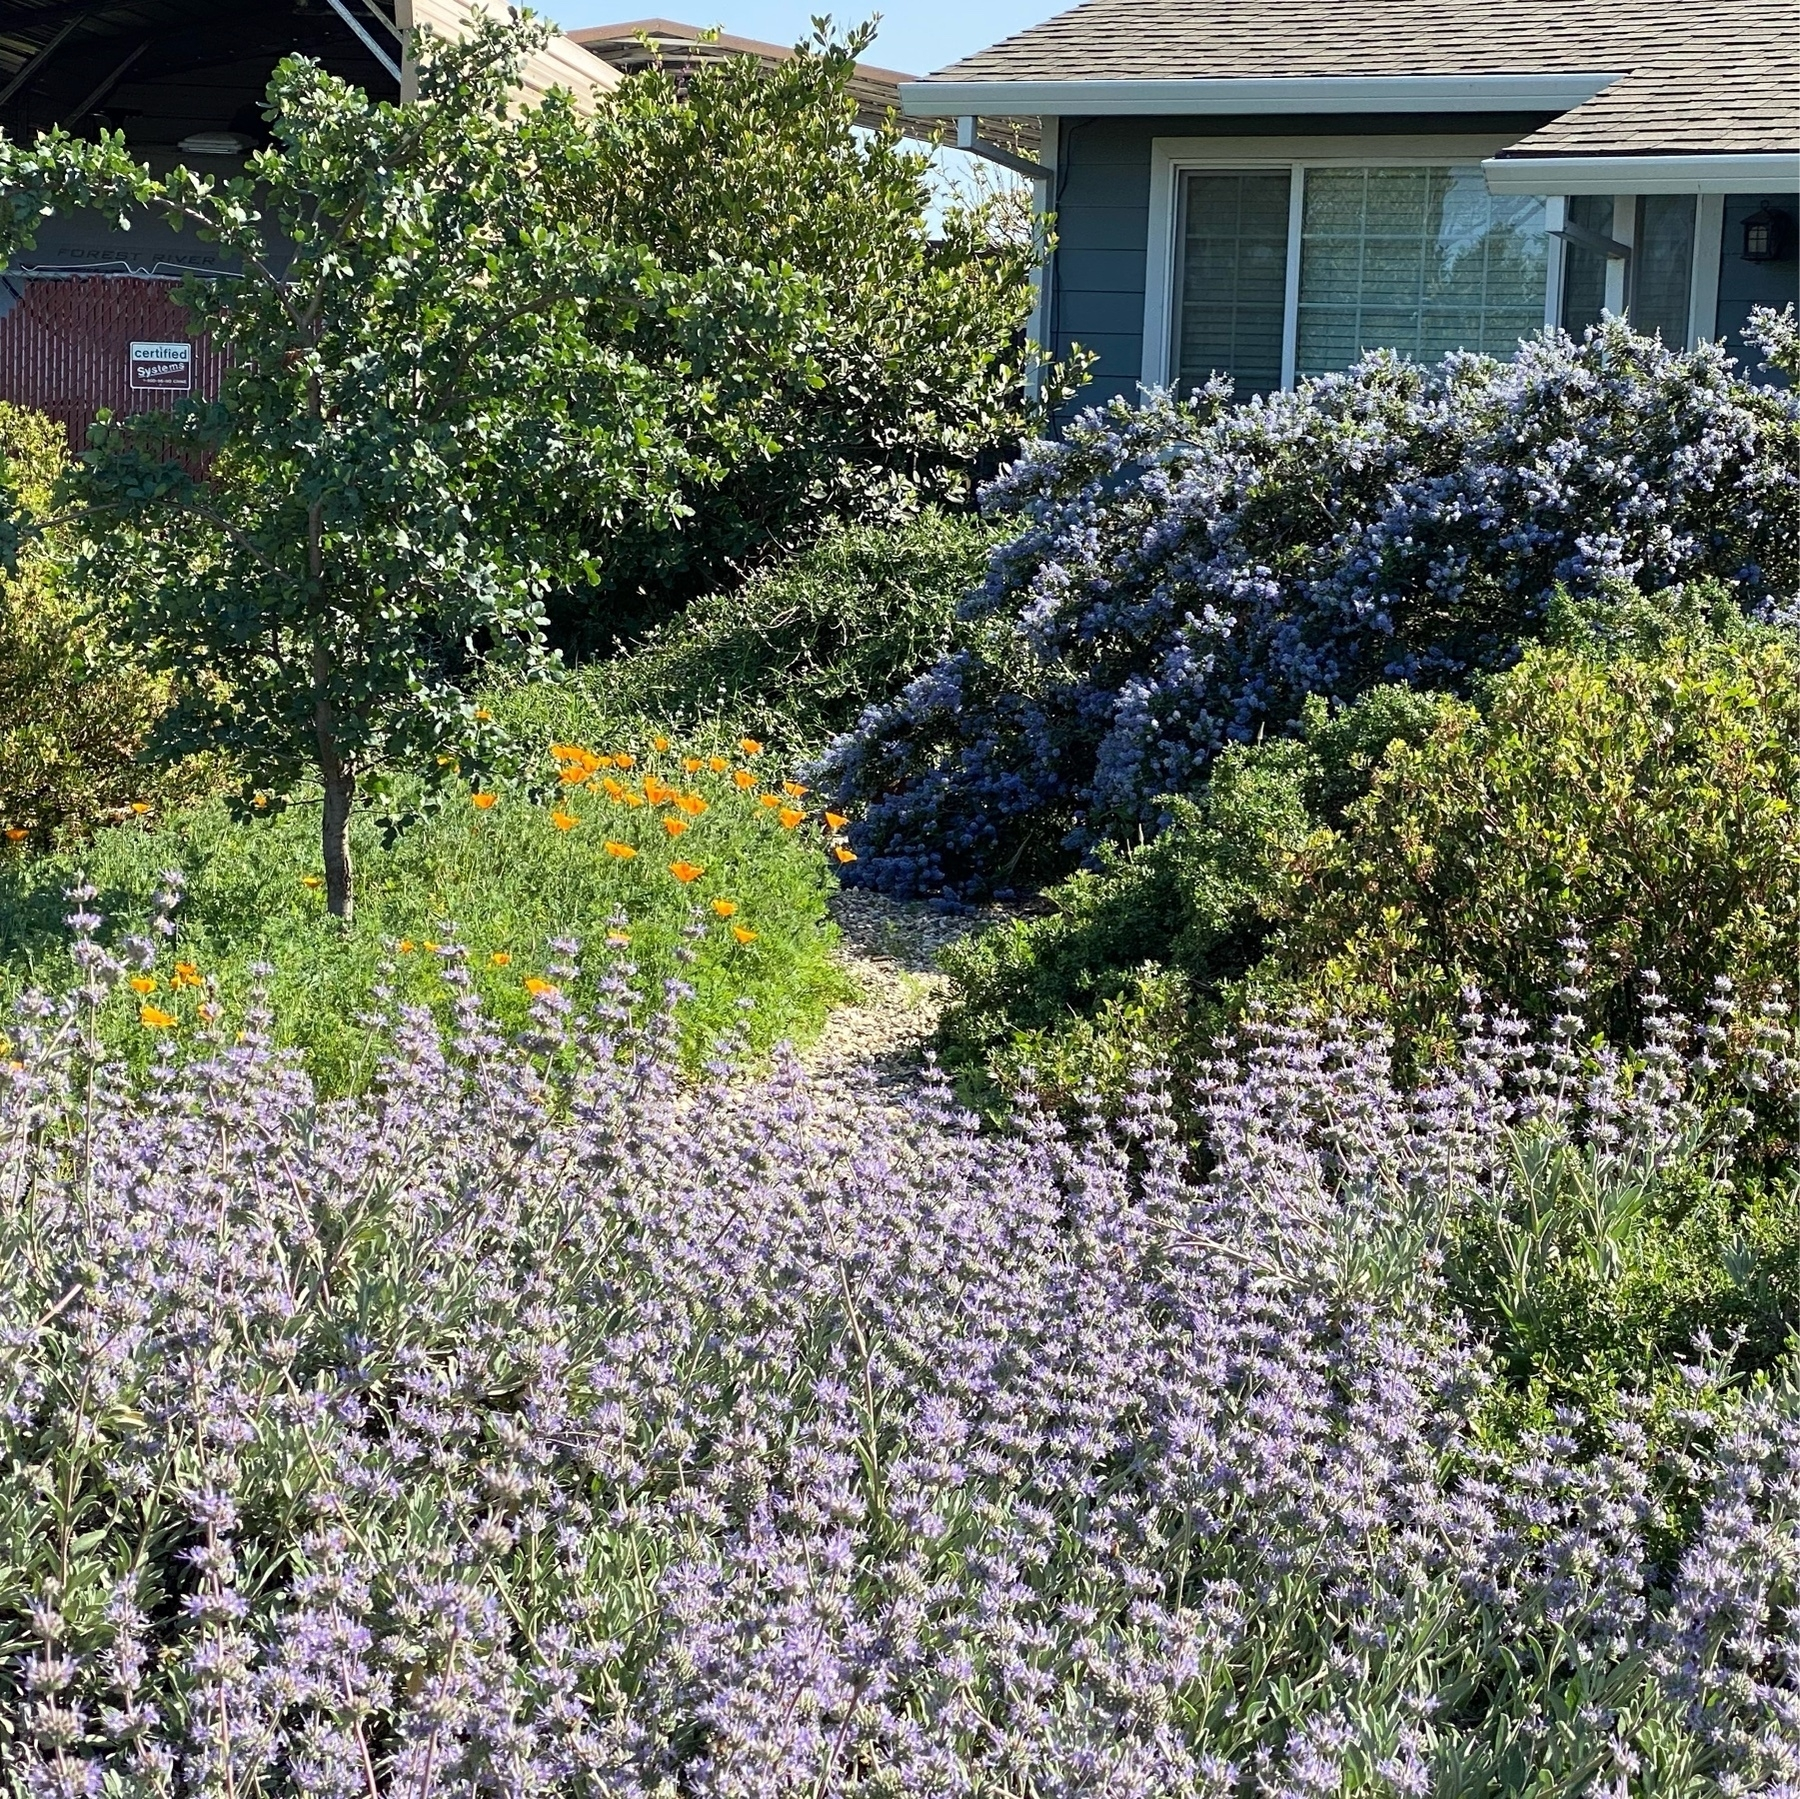 light purple sage flowers, golden poppy flowers, and violet ceanothus flowers.